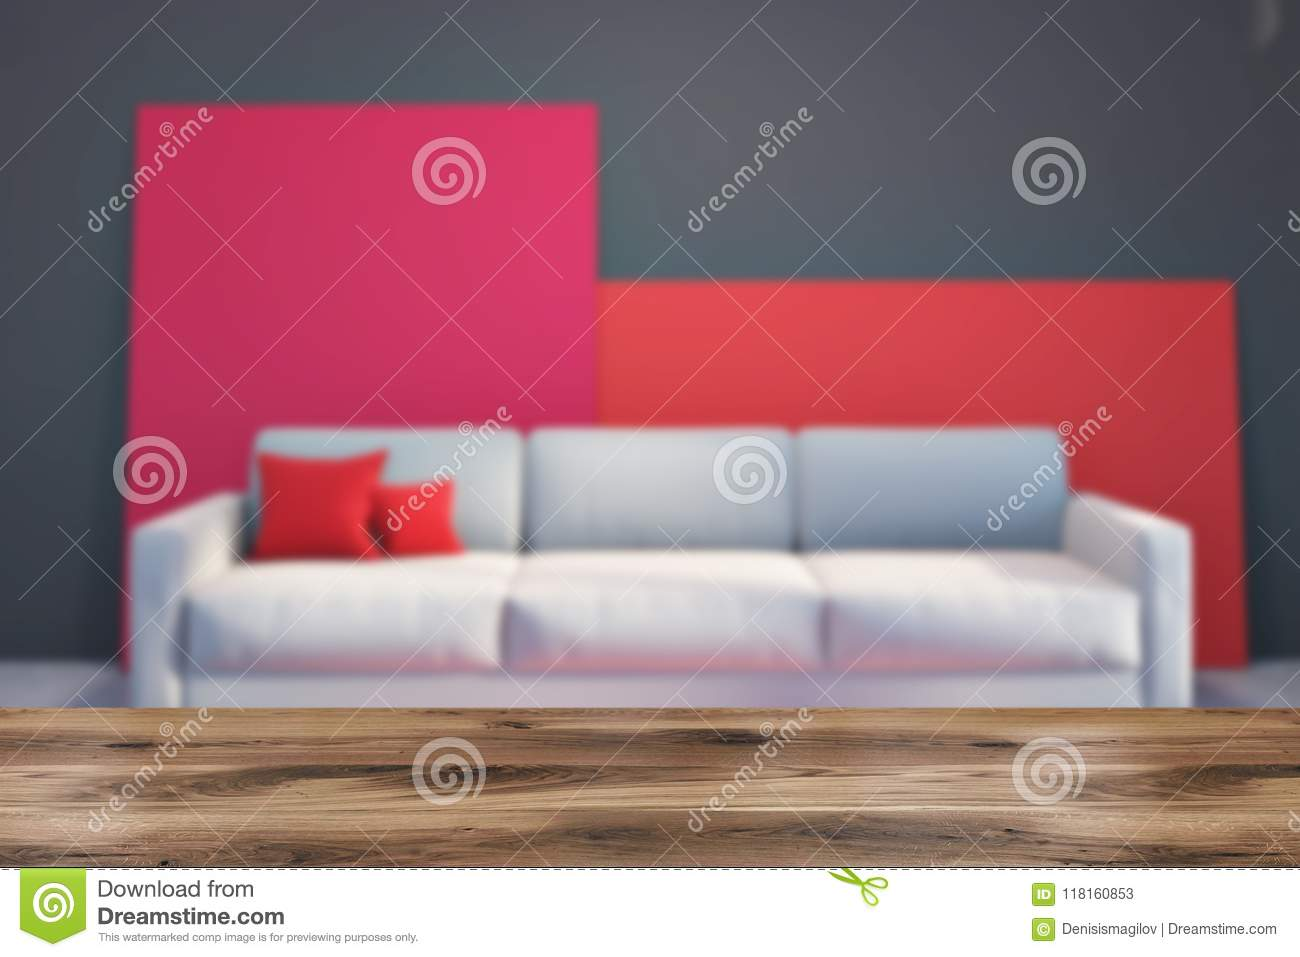 gray sofa in a gray and red living room blur stock illustration rh dreamstime com gray and red living room furniture gray and red living room furniture